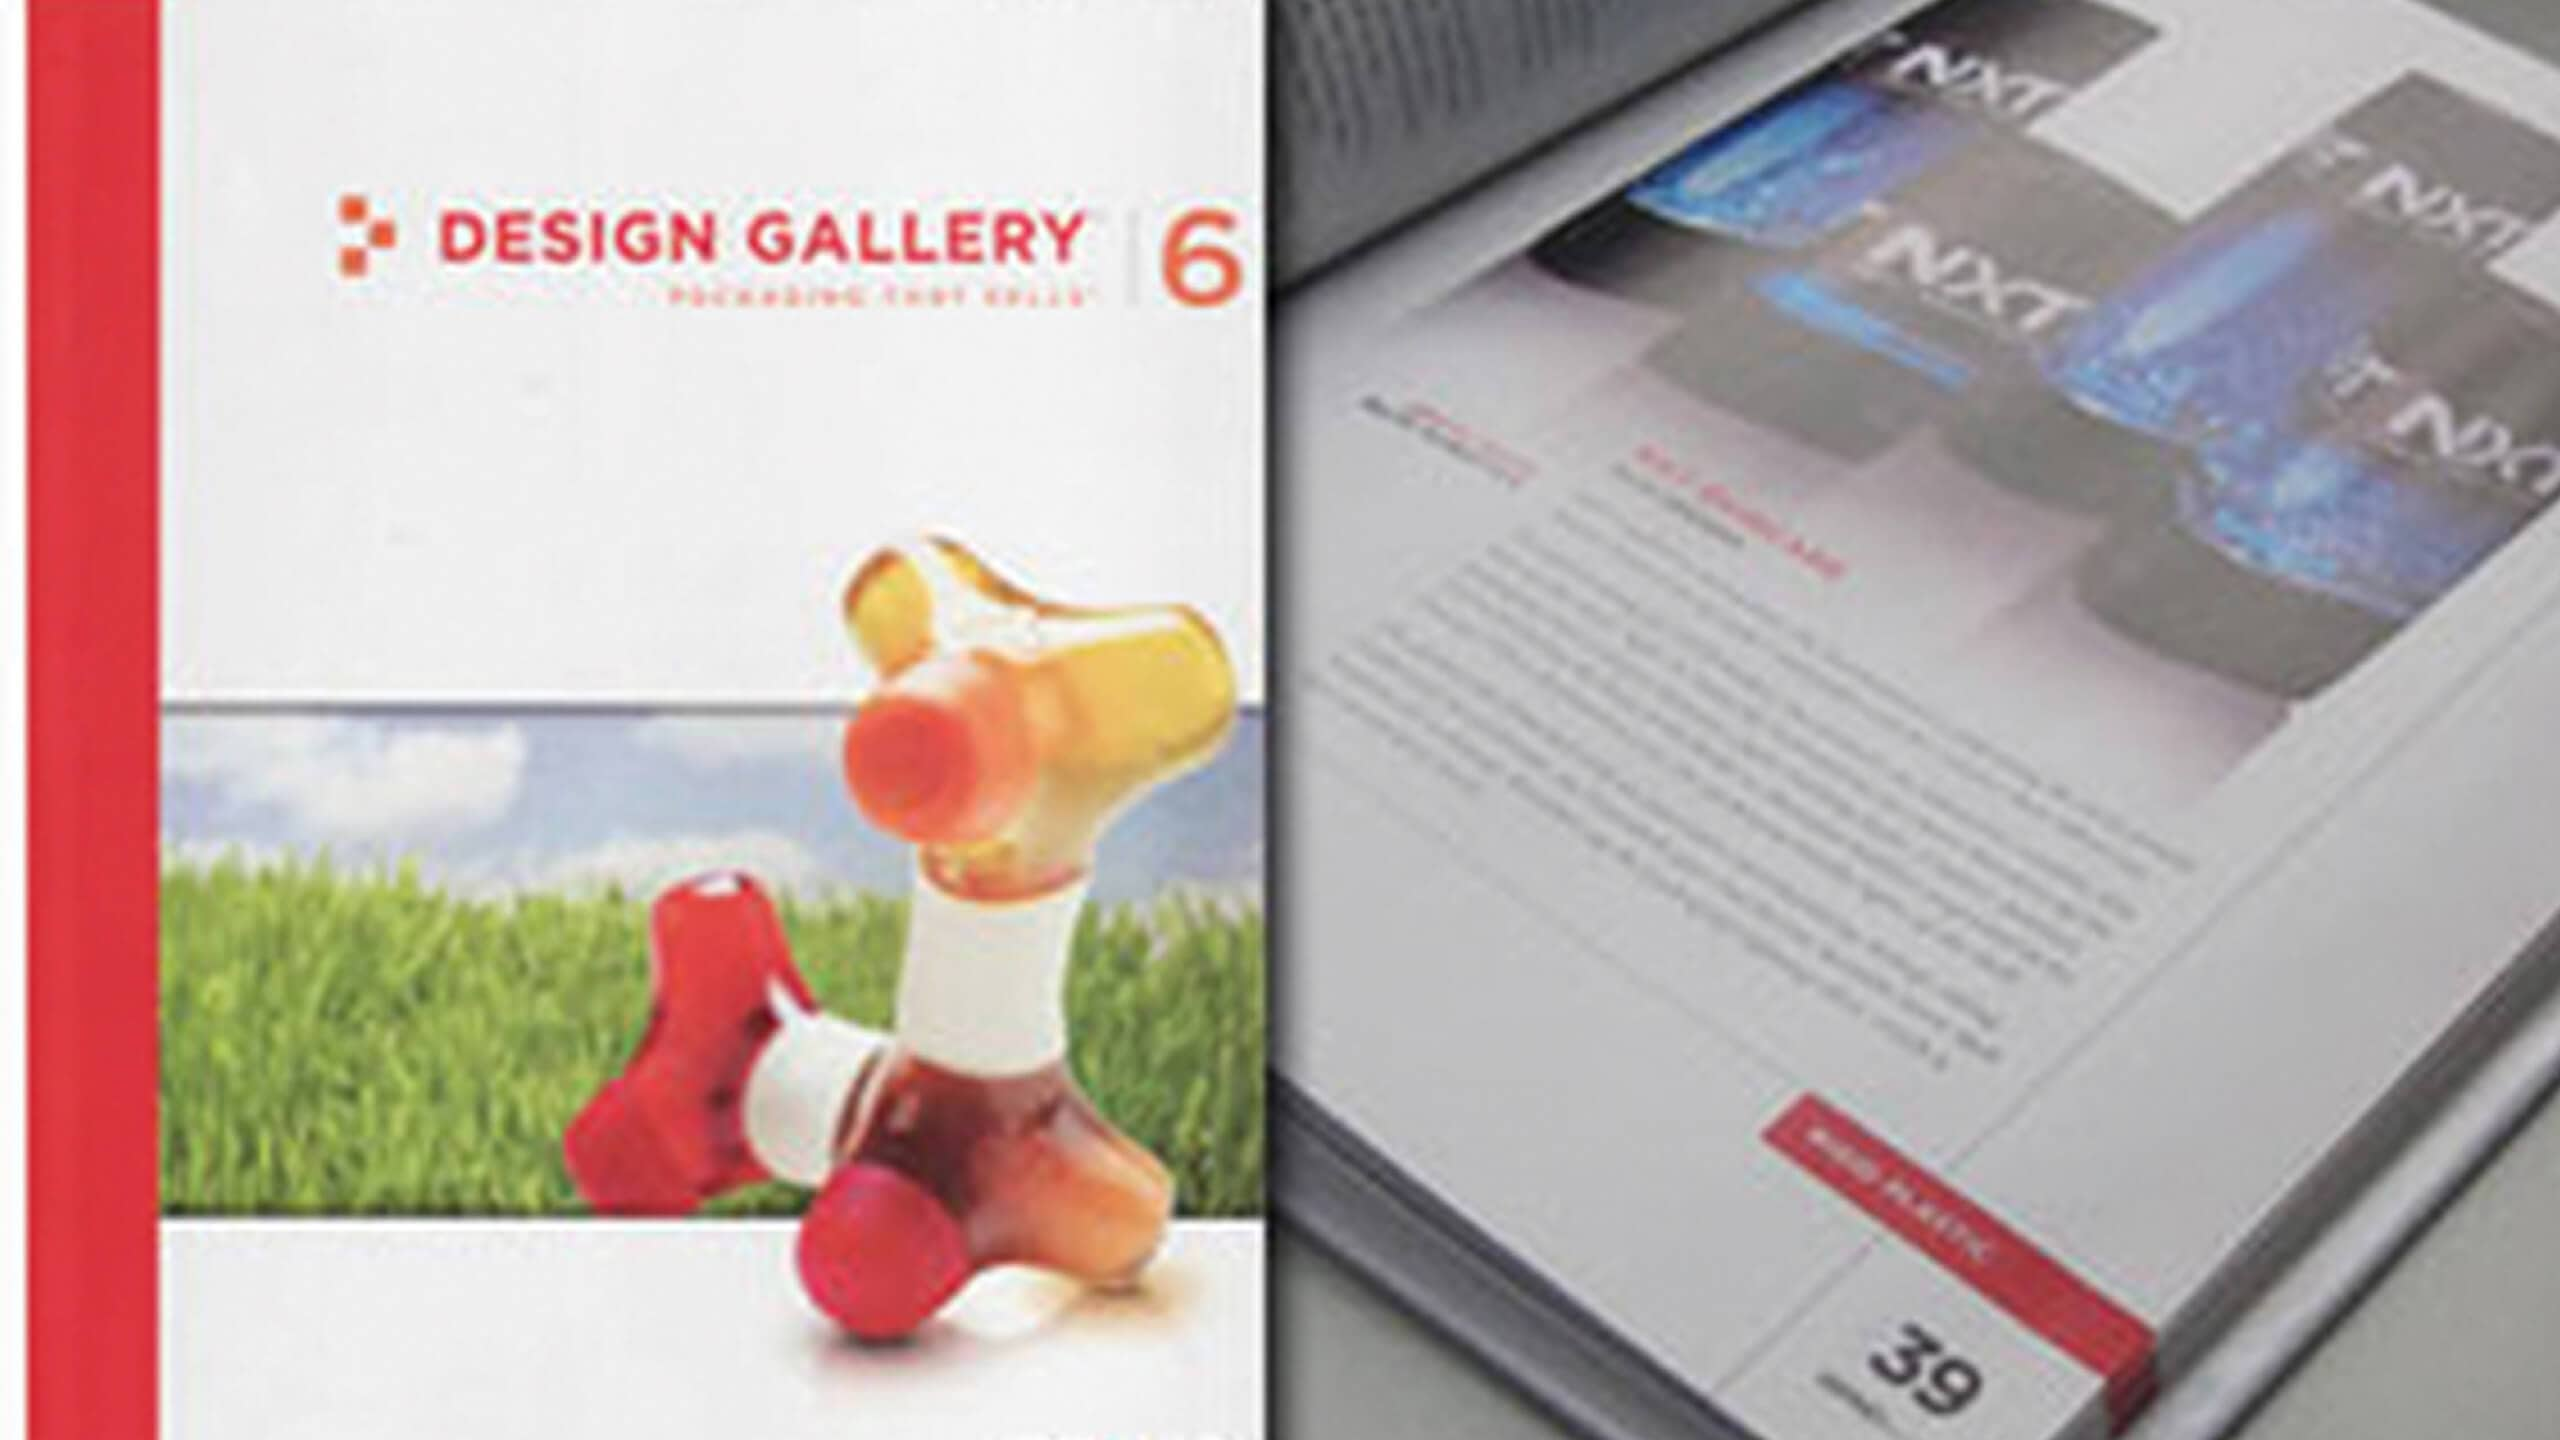 NXT FEATURED IN BRAND PACKAGING'S DESIGN GALLERY